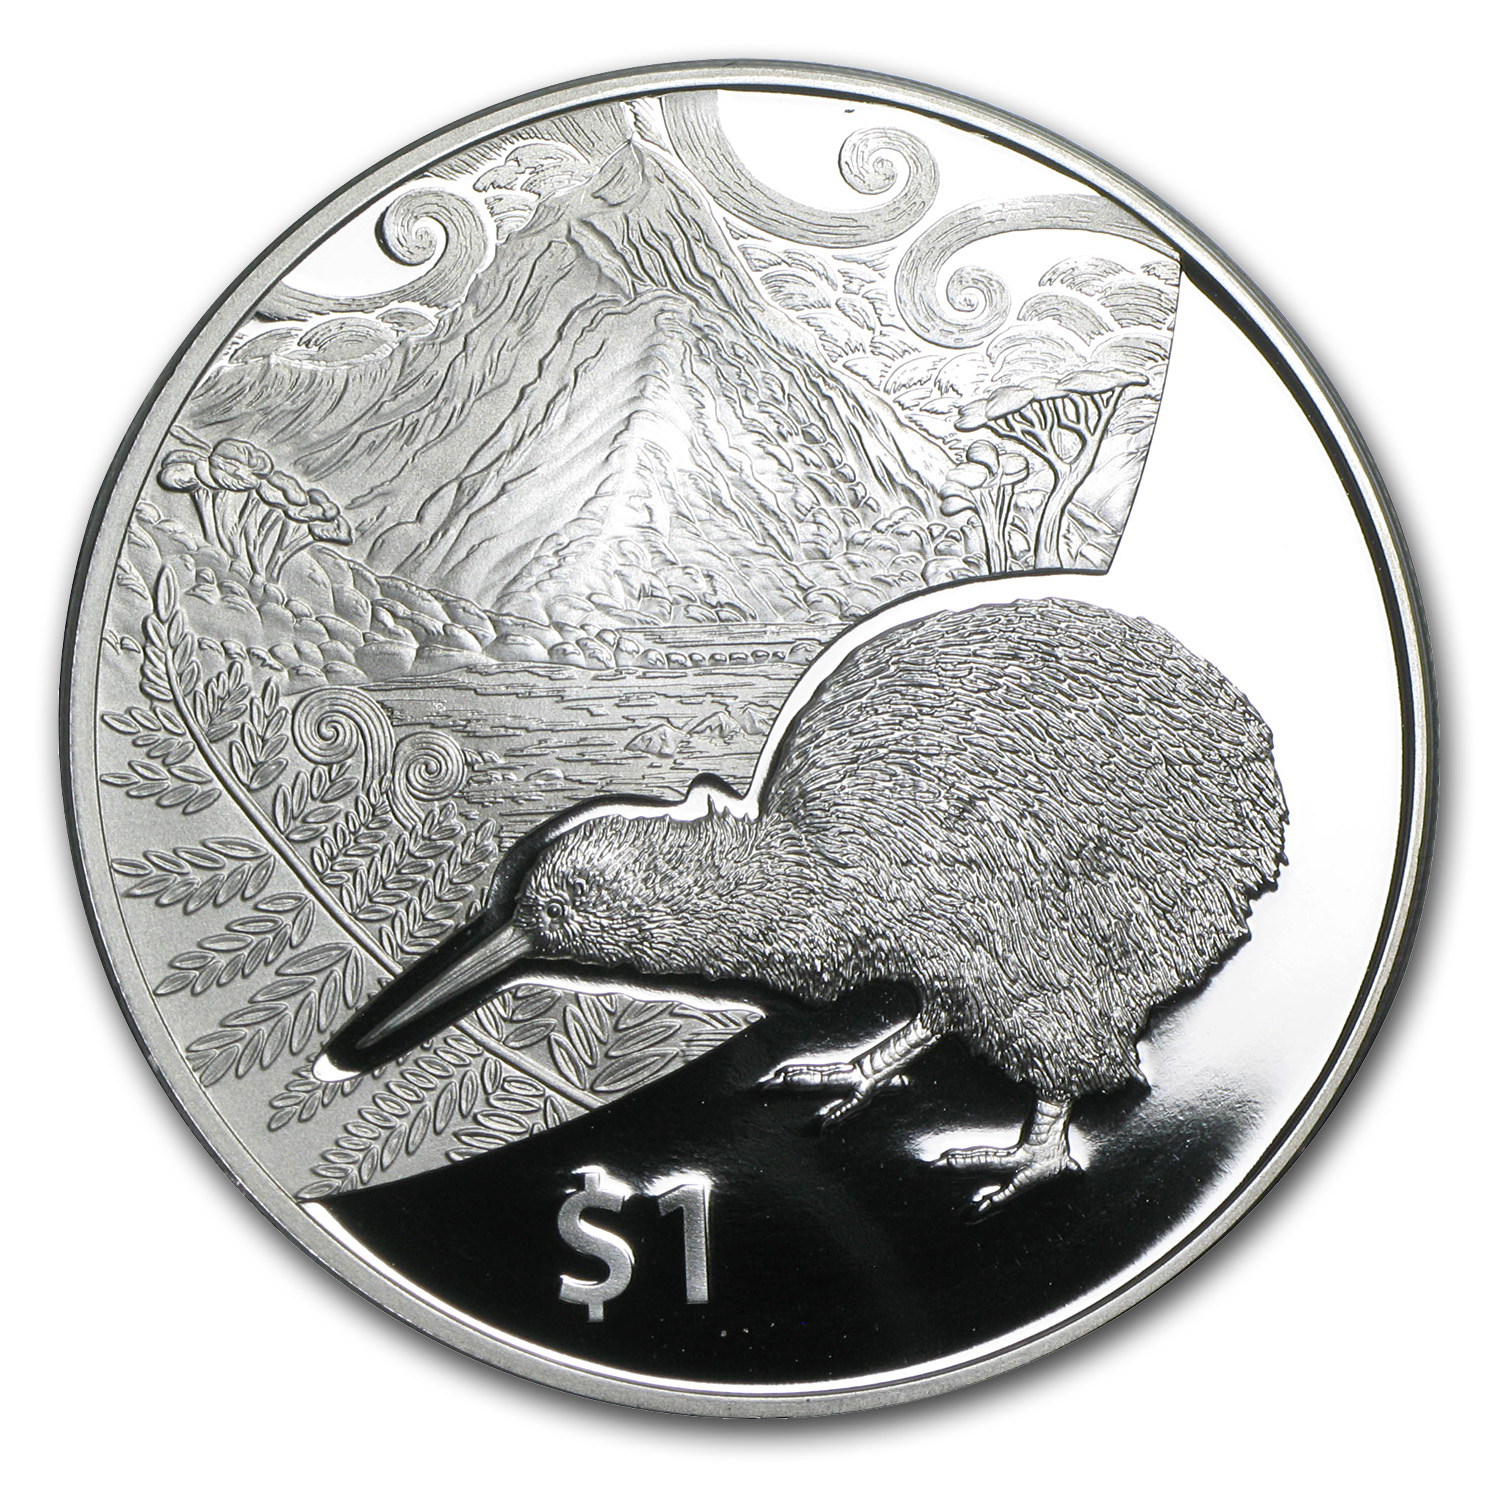 2014 1 oz Silver New Zealand Treasures $1 Kiwi Proof